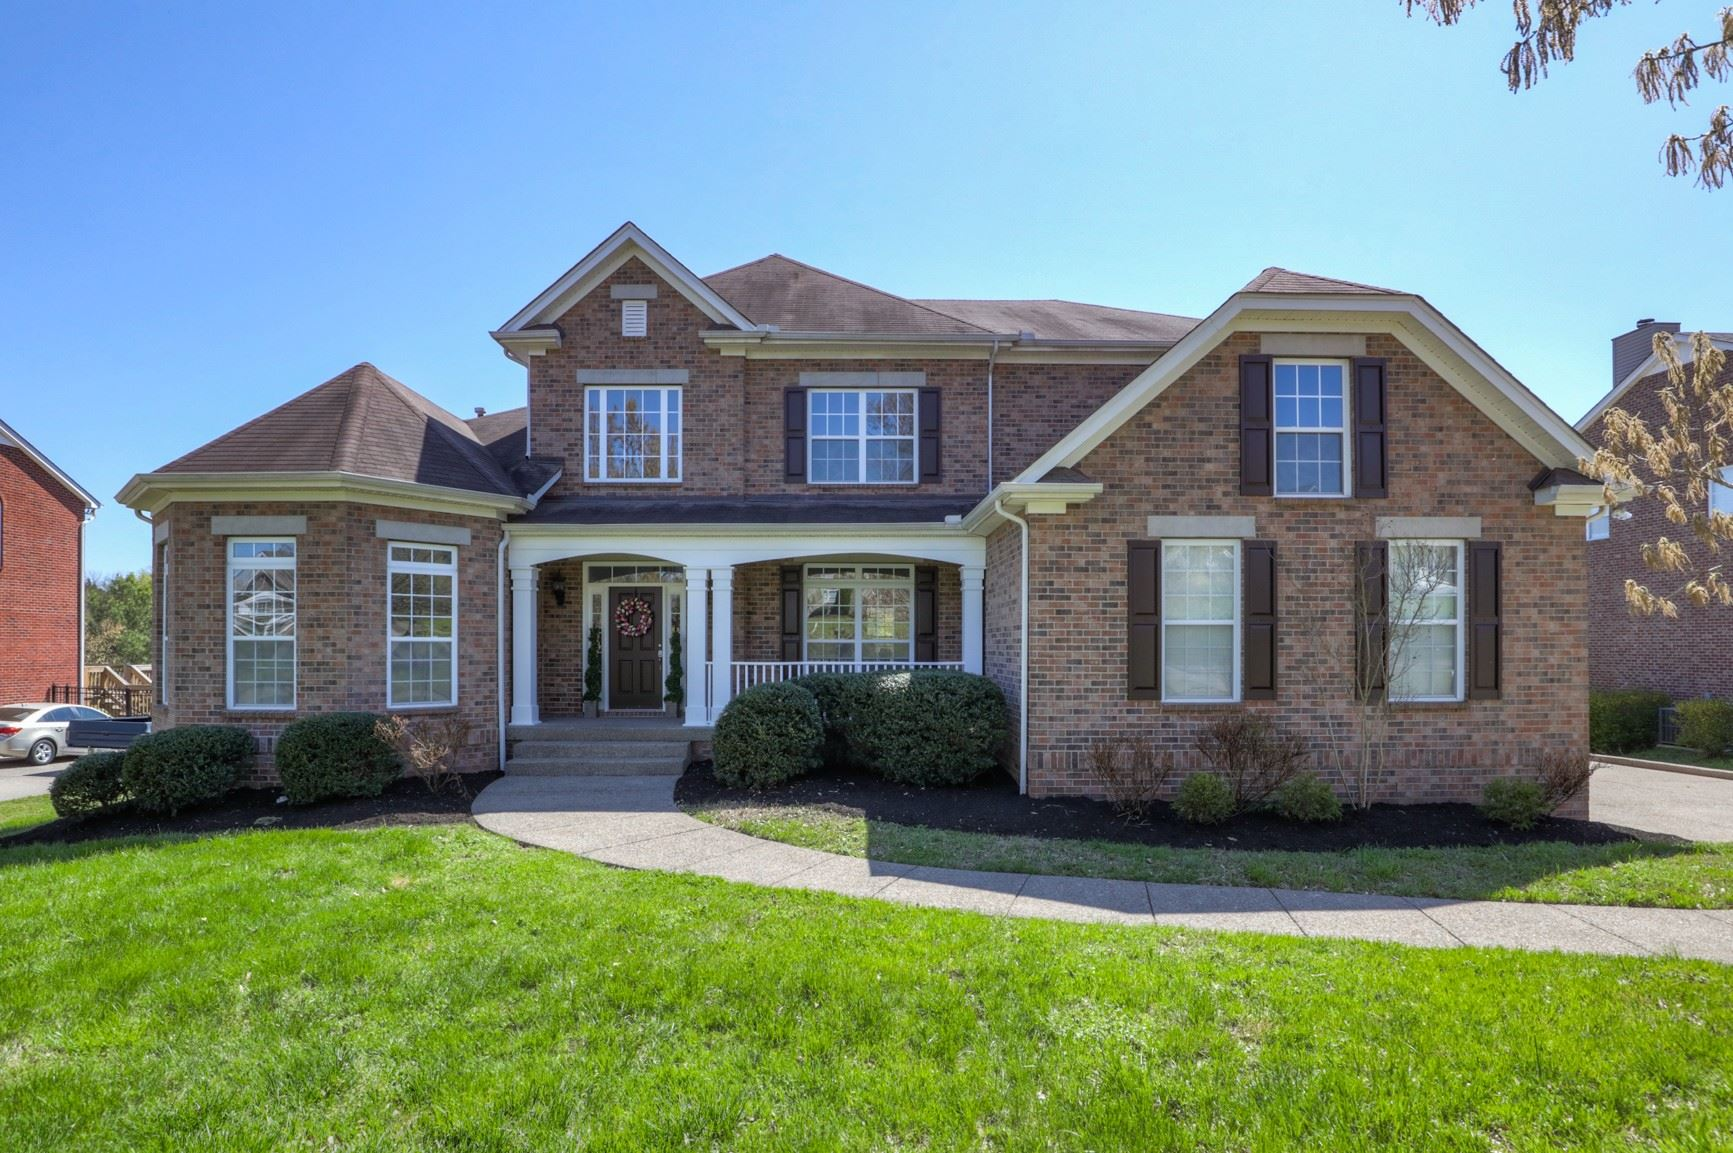 Photo of 9653 Boswell Ct, Brentwood, TN 37027 (MLS # 2136411)